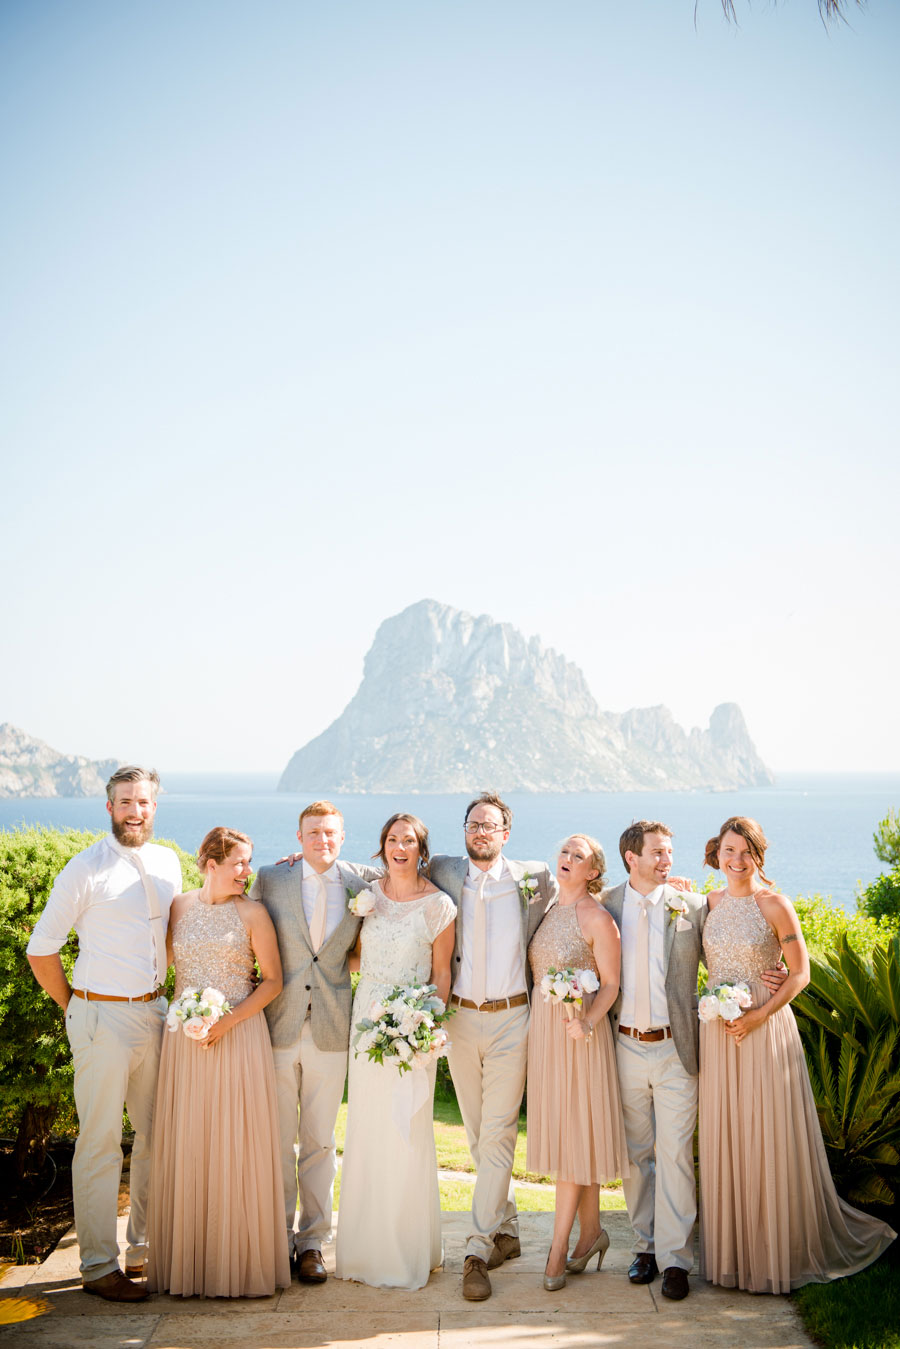 nicola-and-jimmy-es-vedra-ibiza-gypsy-westwood-photography-51